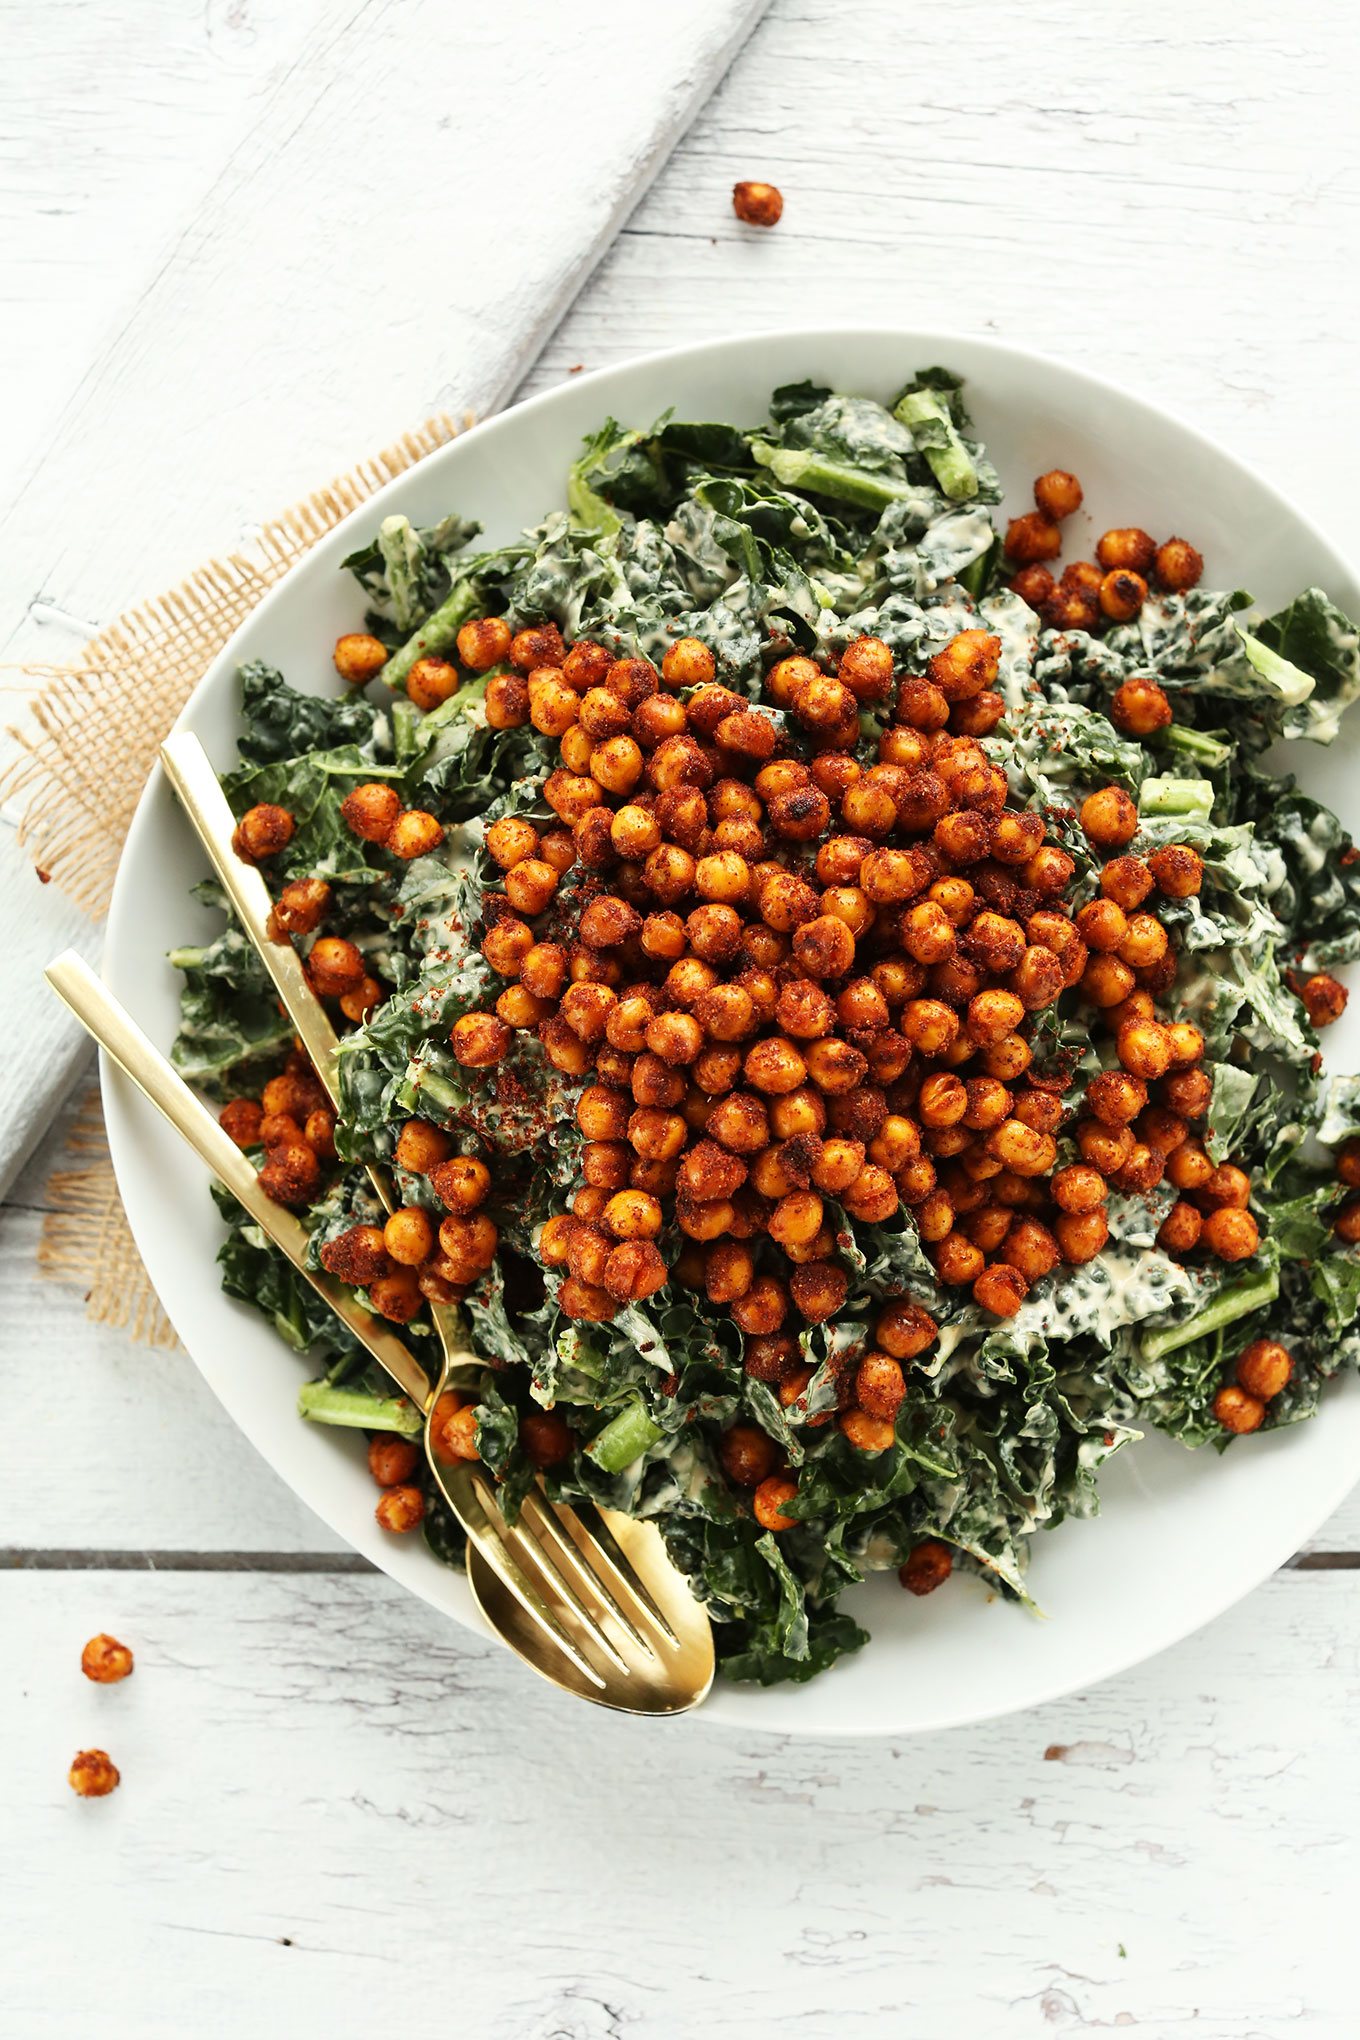 Big plate of our 30-minute Garlicky Kale Salad with Crispy Tandoori Roasted Chickpeas